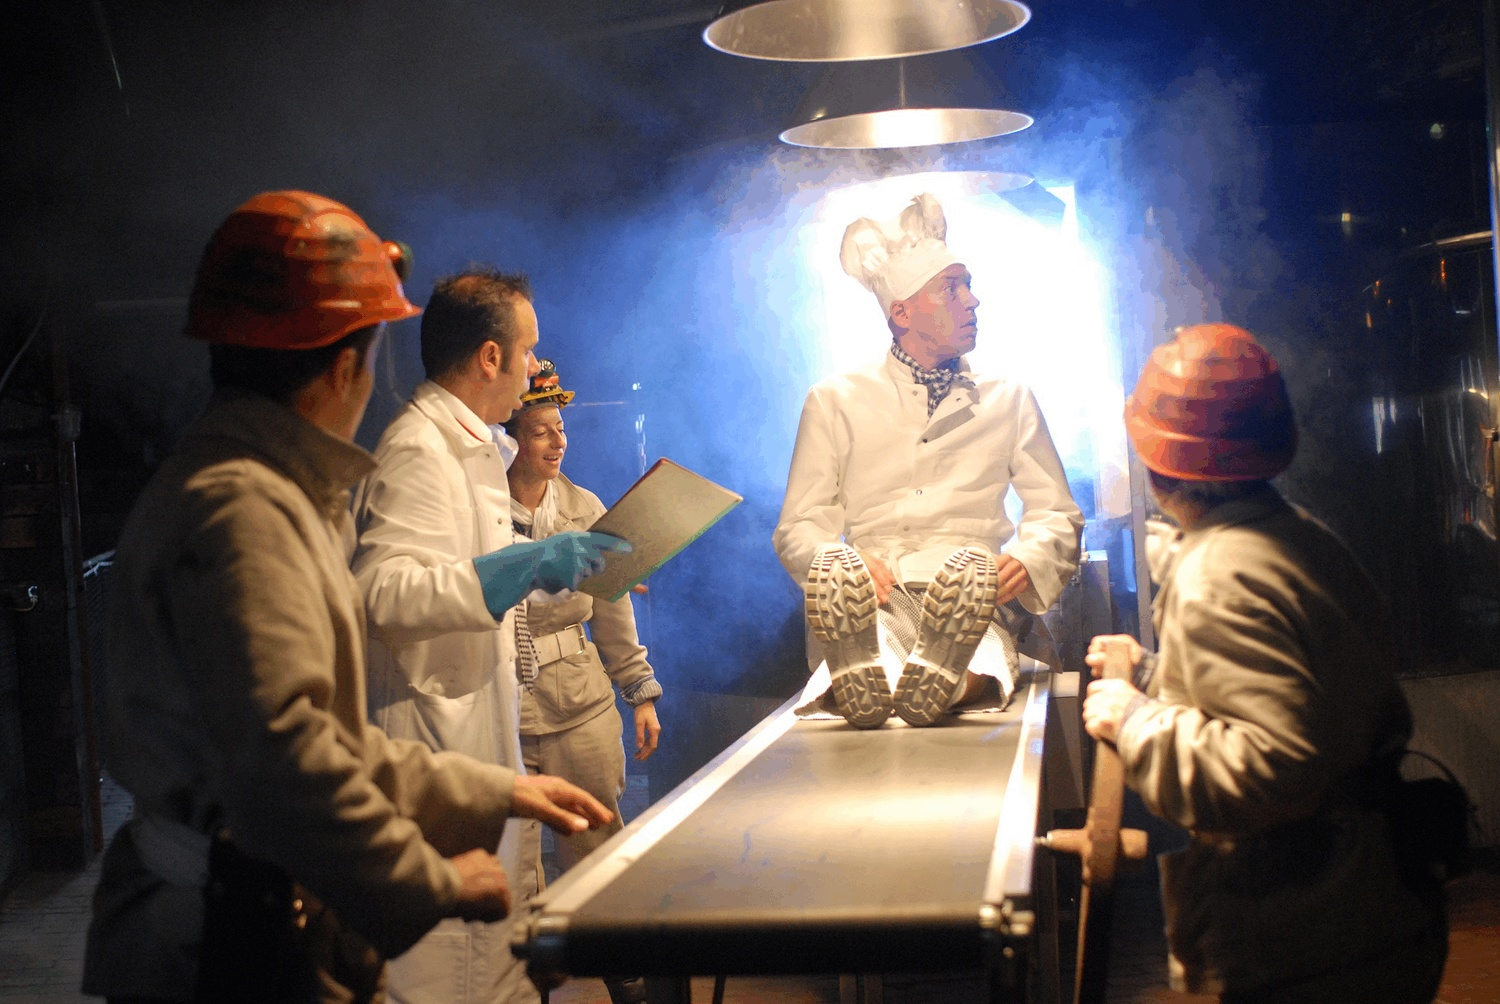 A man wearing a chef's outfit and hat sits on a conveyer belt as 4 performers in different iconic white suits watch on